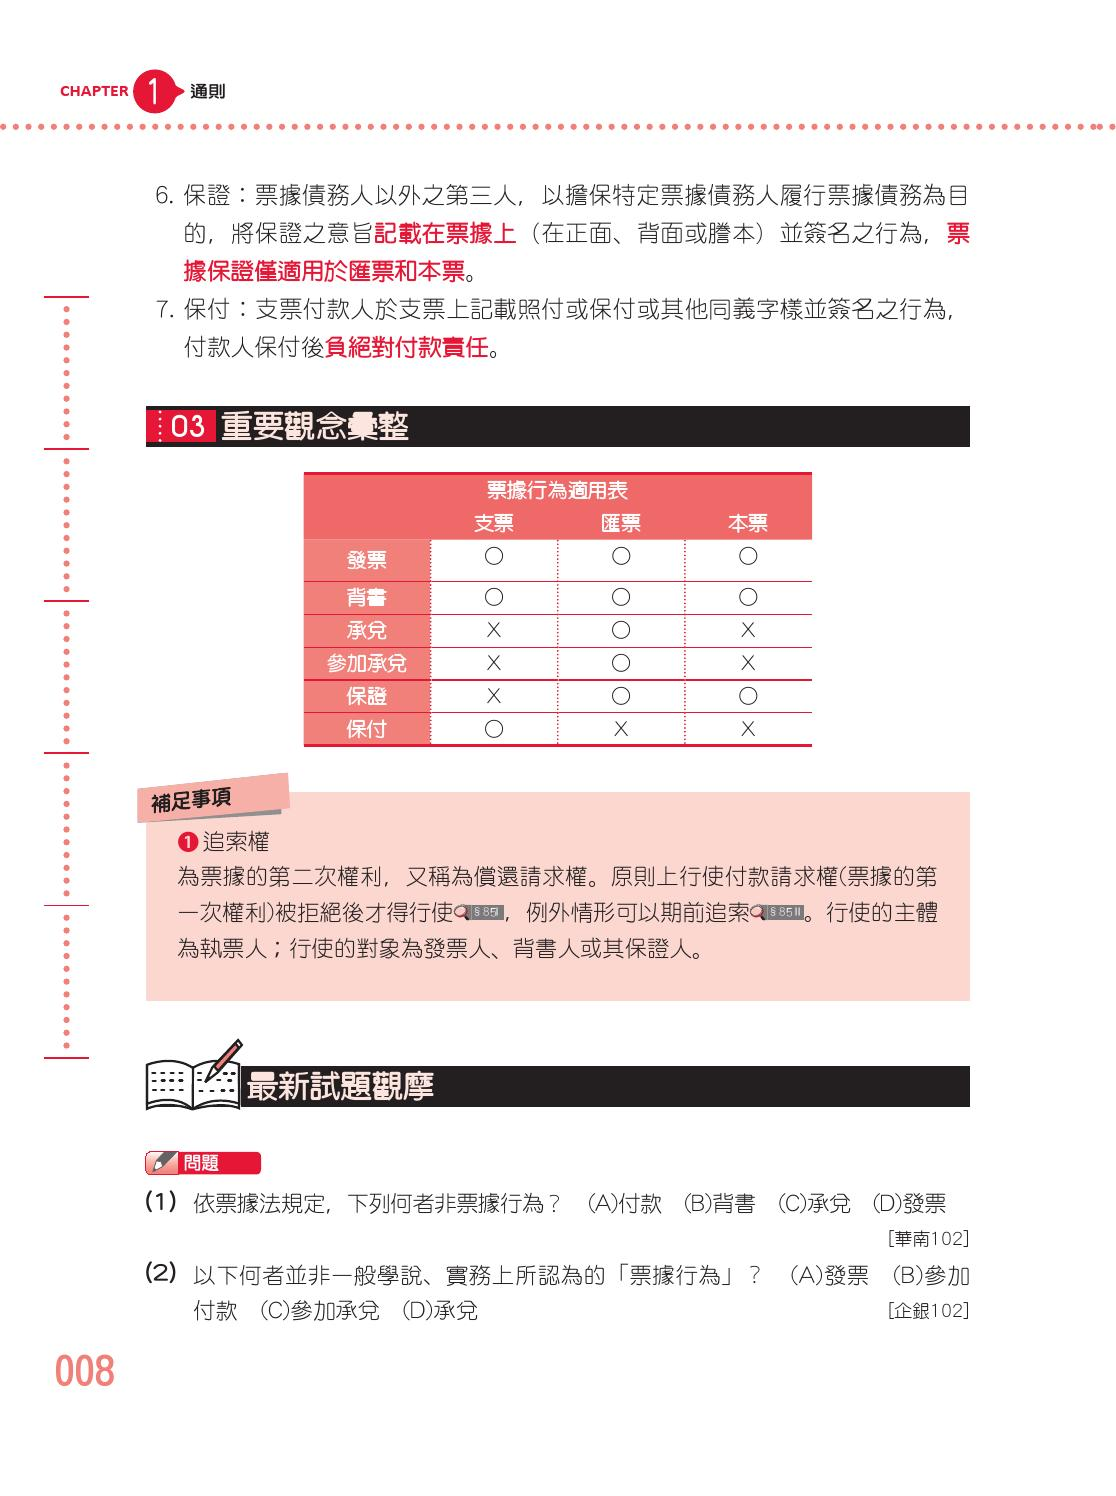 Ce1507 票據法試閱 by greatbooks Lin - issuu